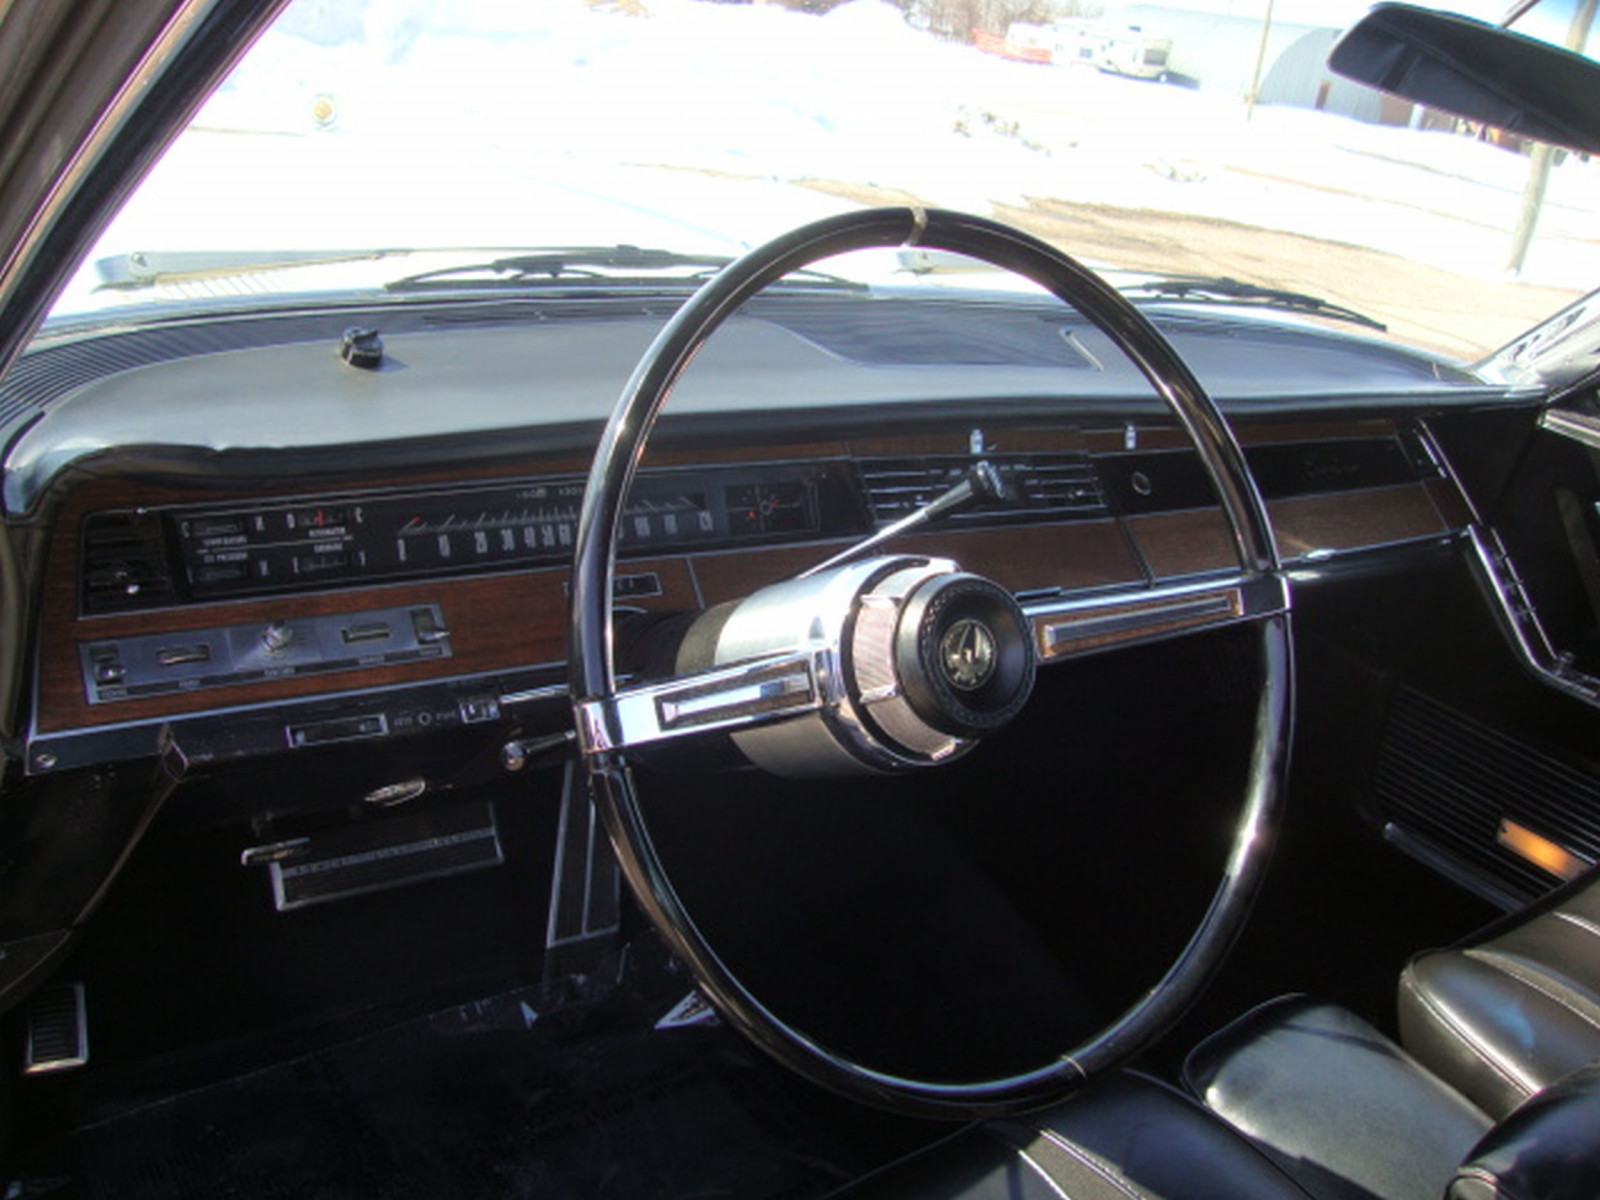 1967 Chrysler Imperial Crown Coupe - Image 21